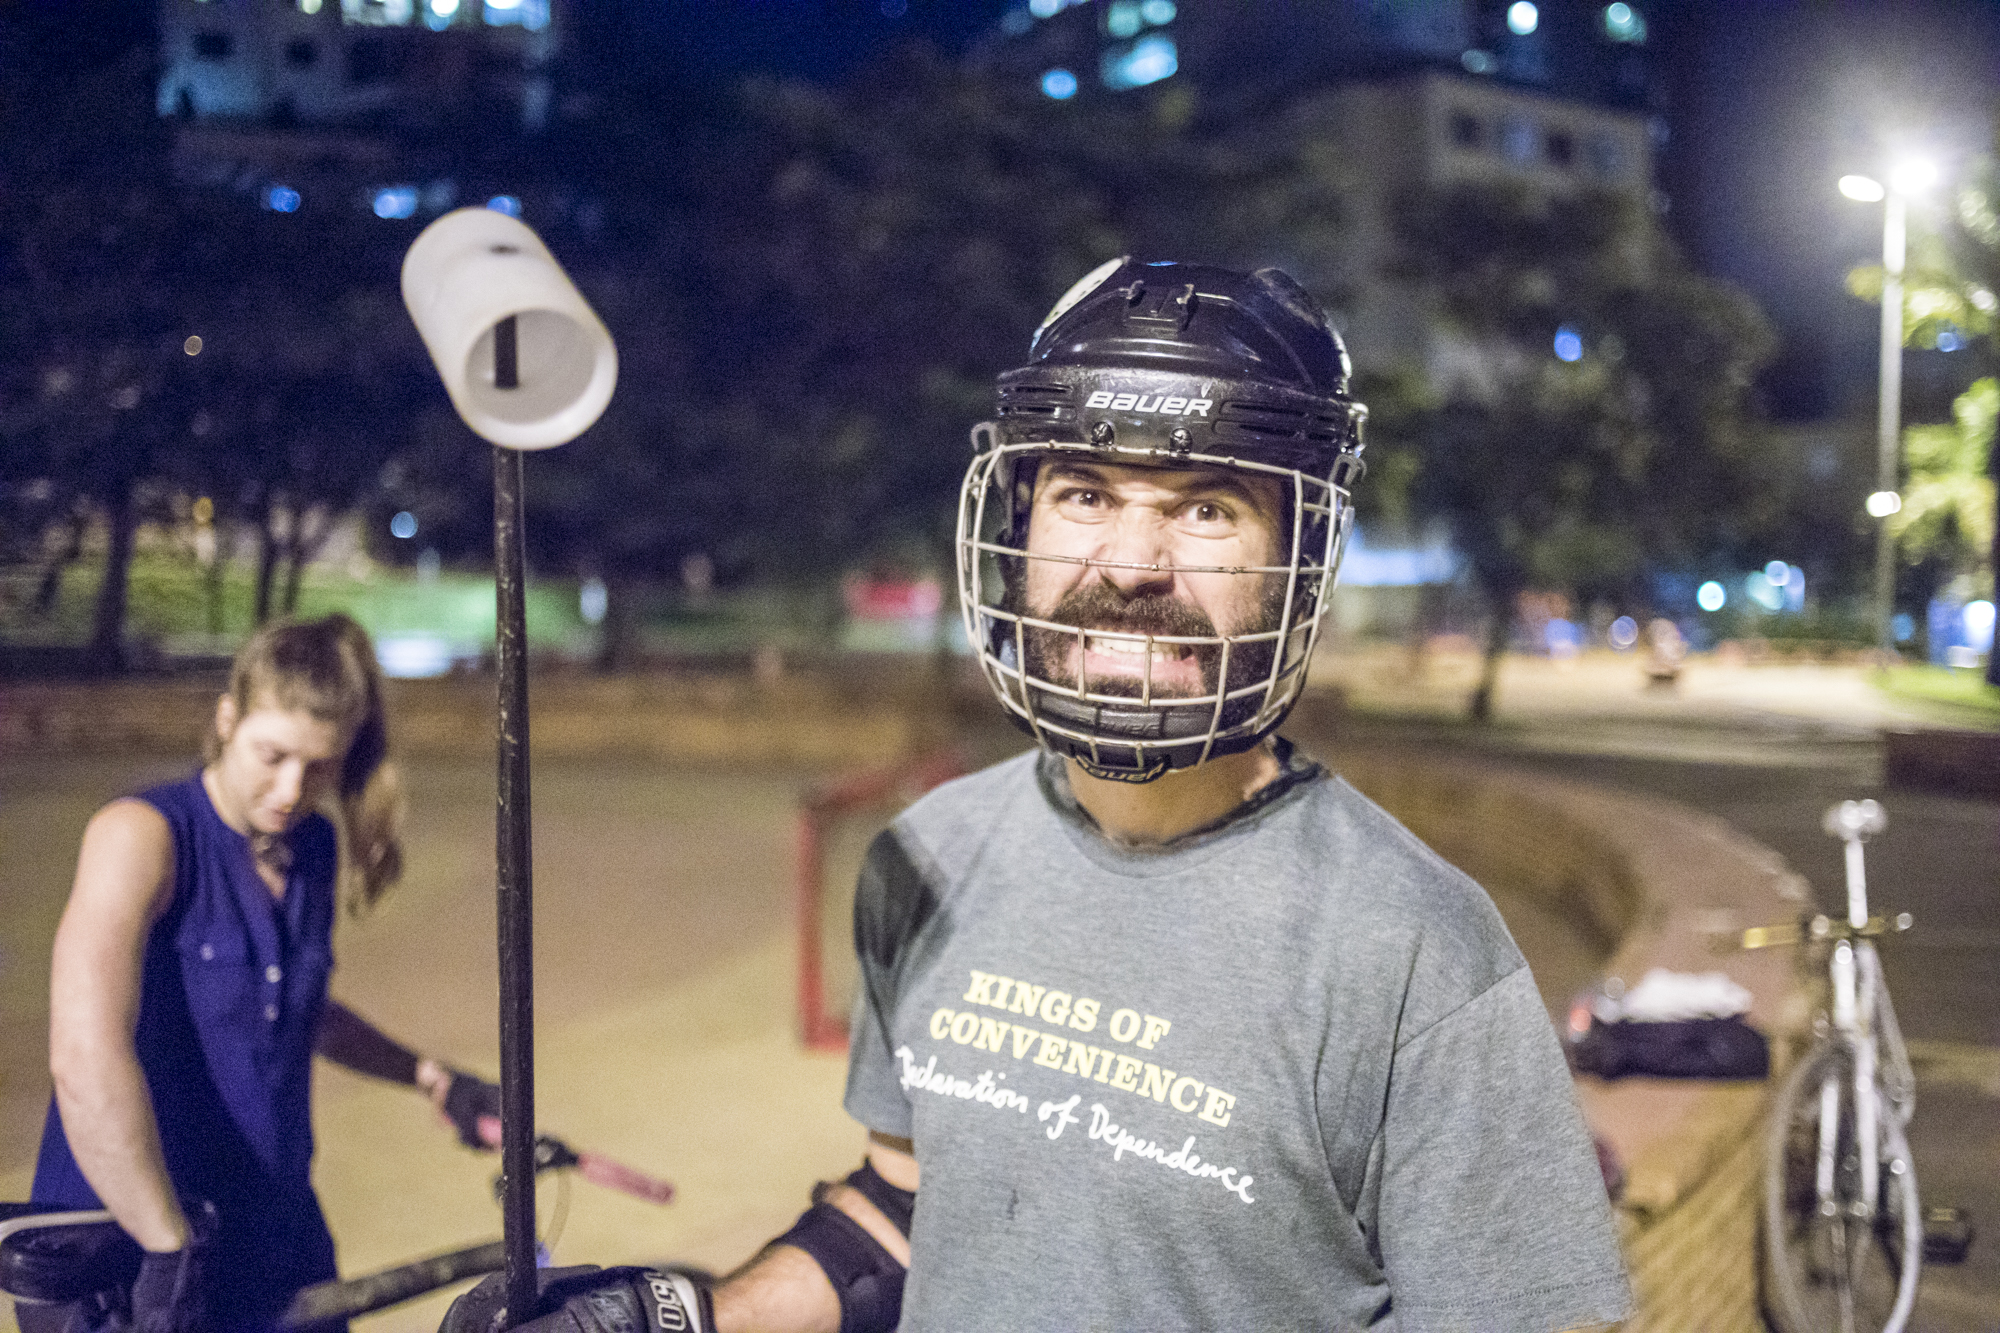 In 2013, a group of cyclists formed bike polo teams. The co-ed teams, which train twice a week in Praça Juscelino Kubitschek, have competed in national and international championships. They won the national championship in 2016.